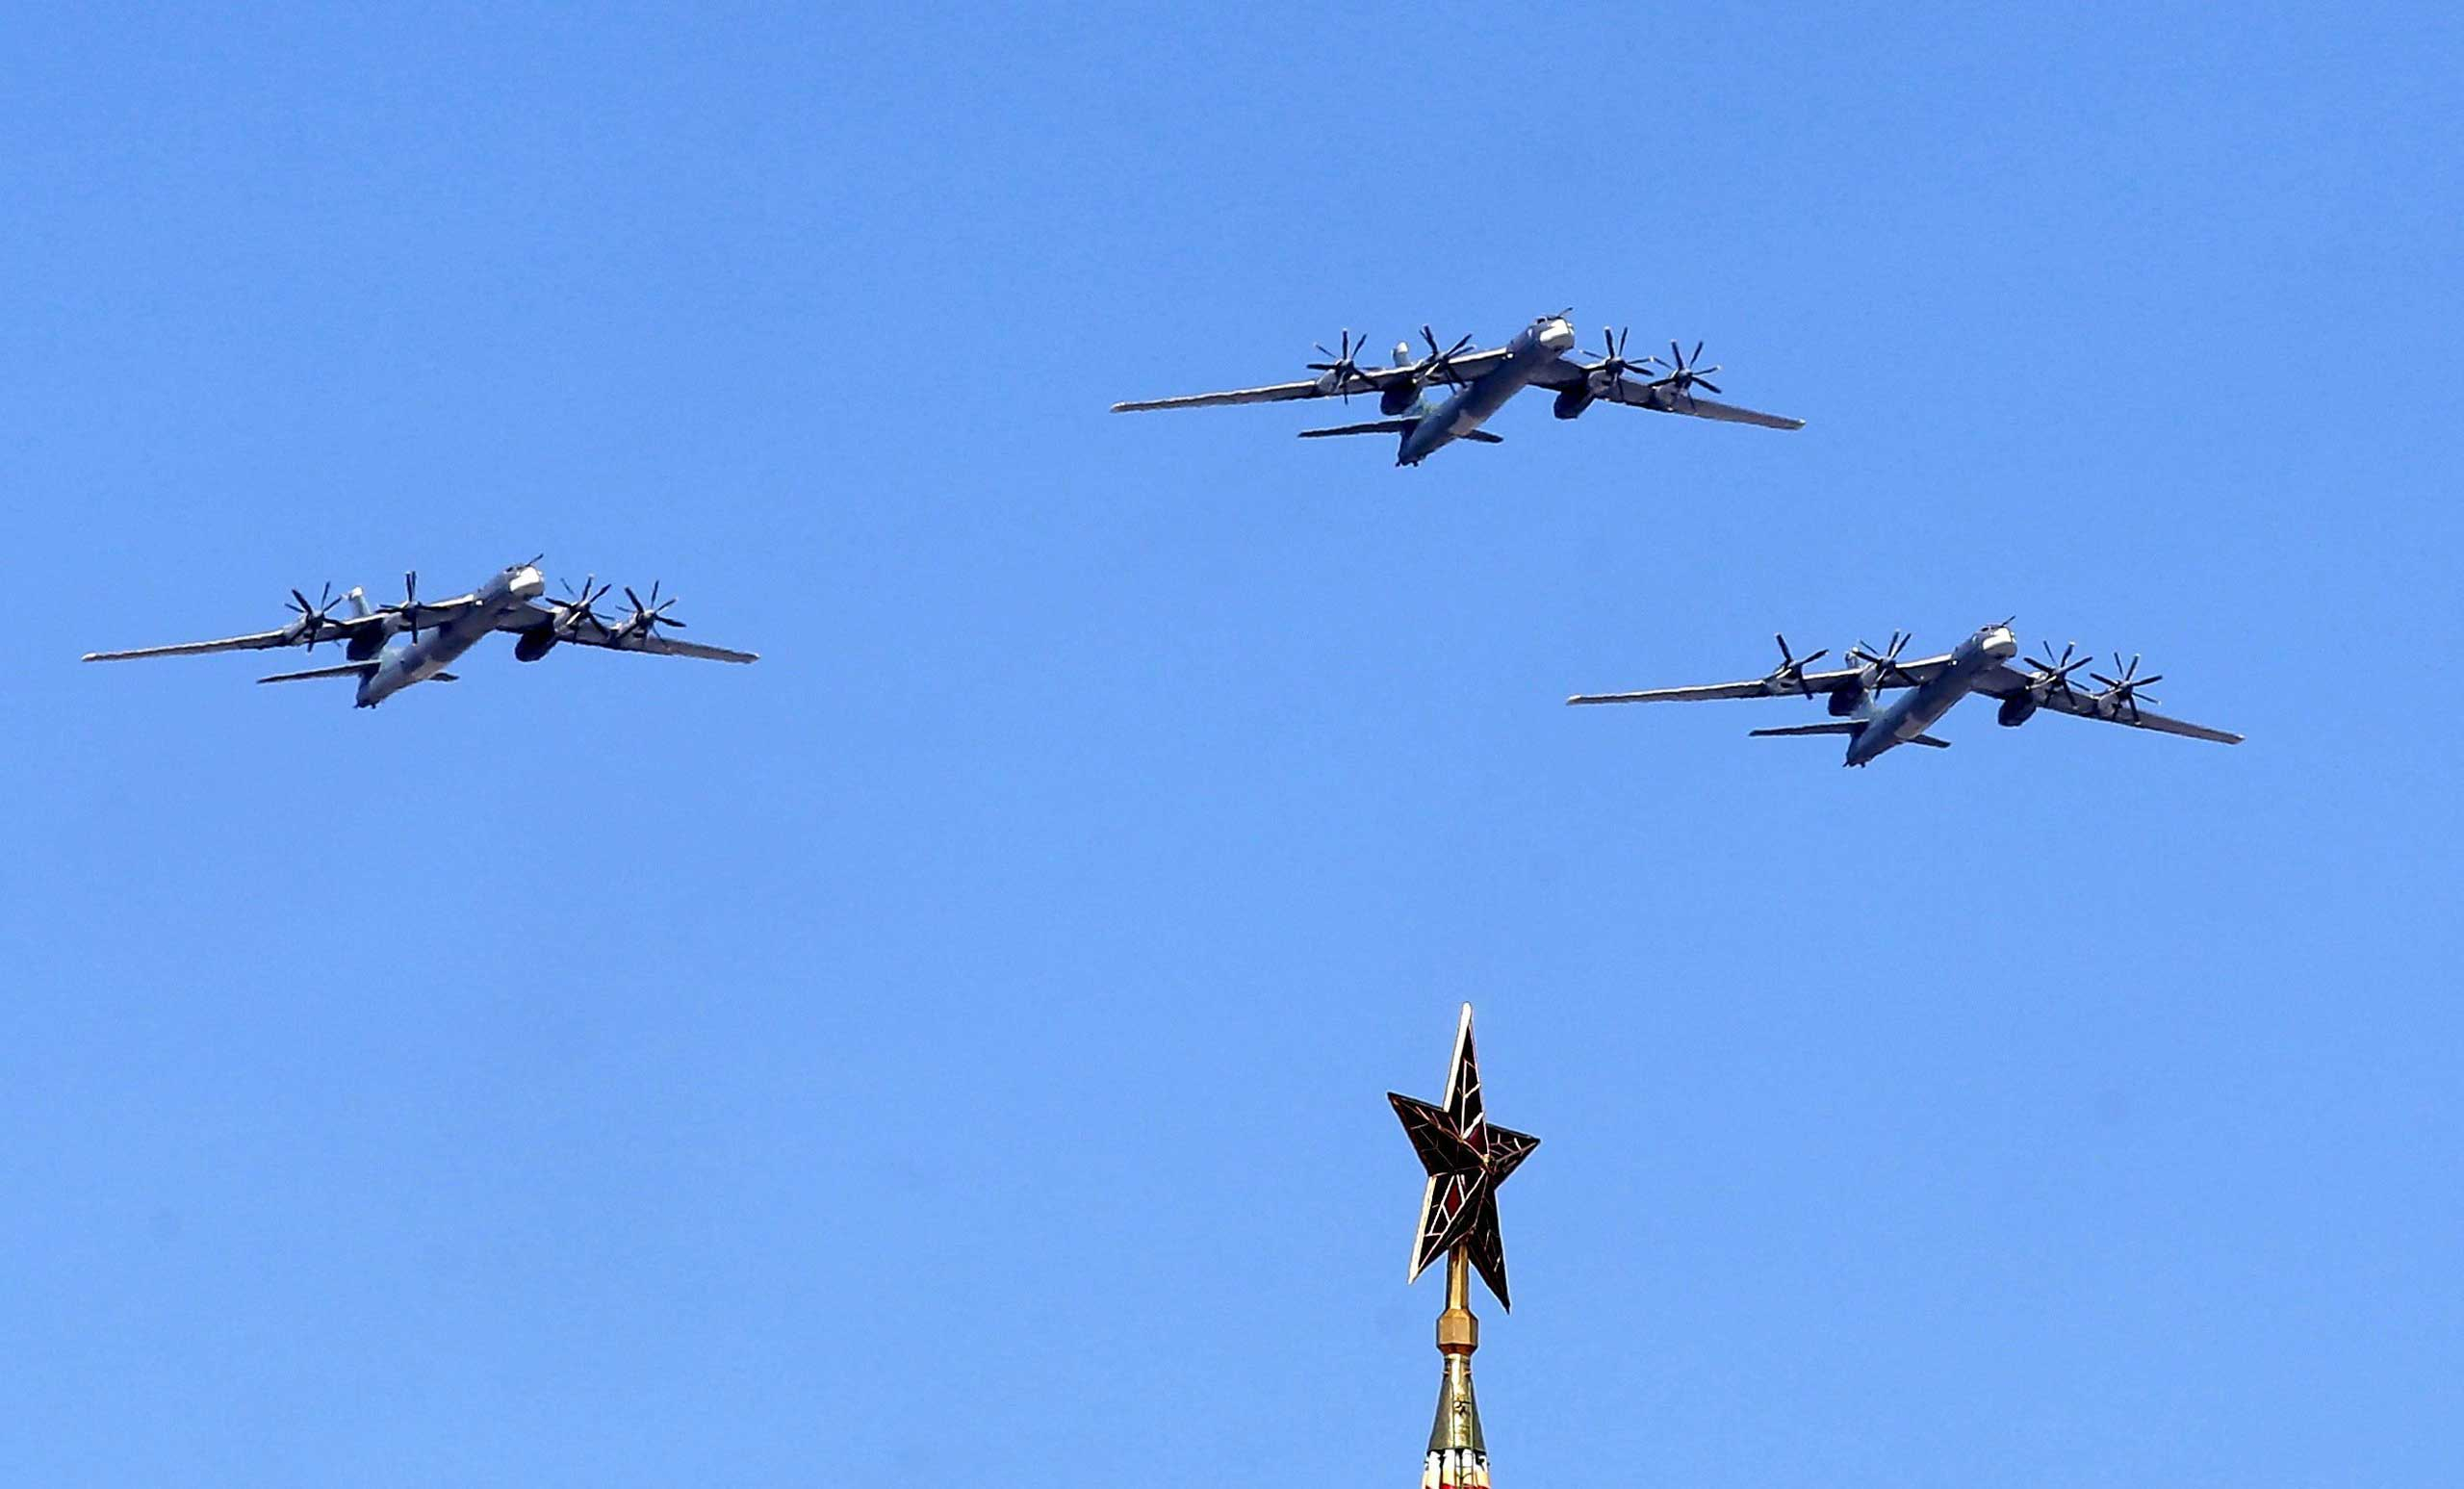 Russian TU-95 MS bombers and missile carriers above the Kremlin, during the rehearsal for the Victory Day military parade at the Red Square in Moscow, in May 2015.